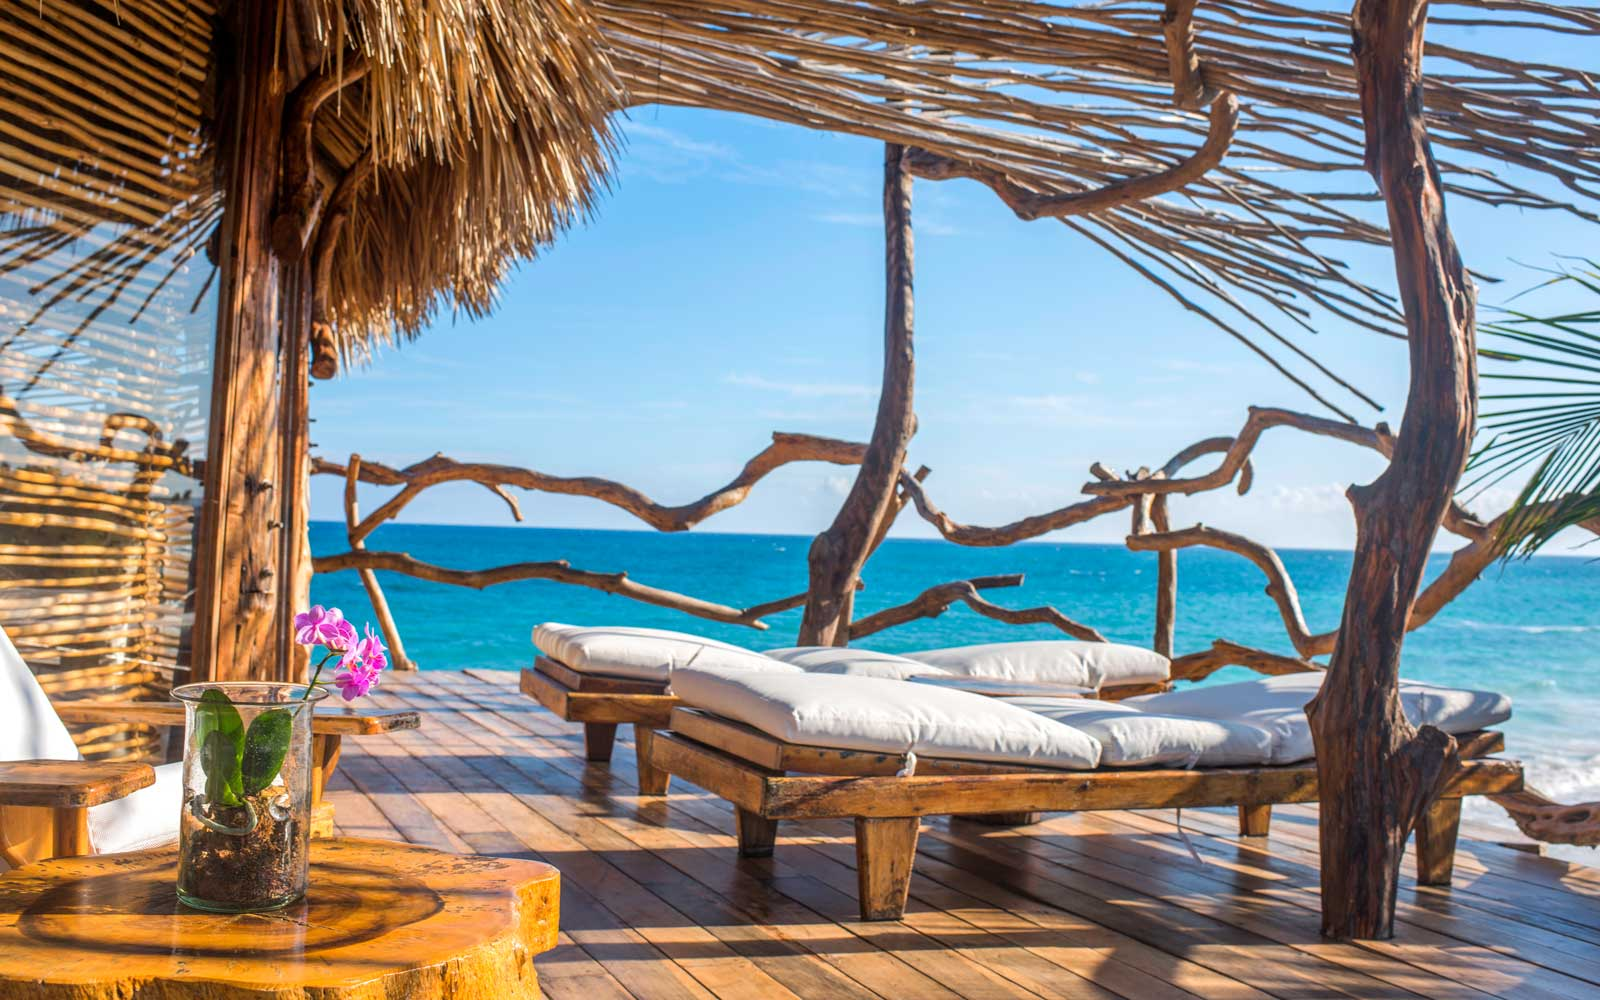 12 Secluded Bungalows In Mexico For Your Next Beach Vacation